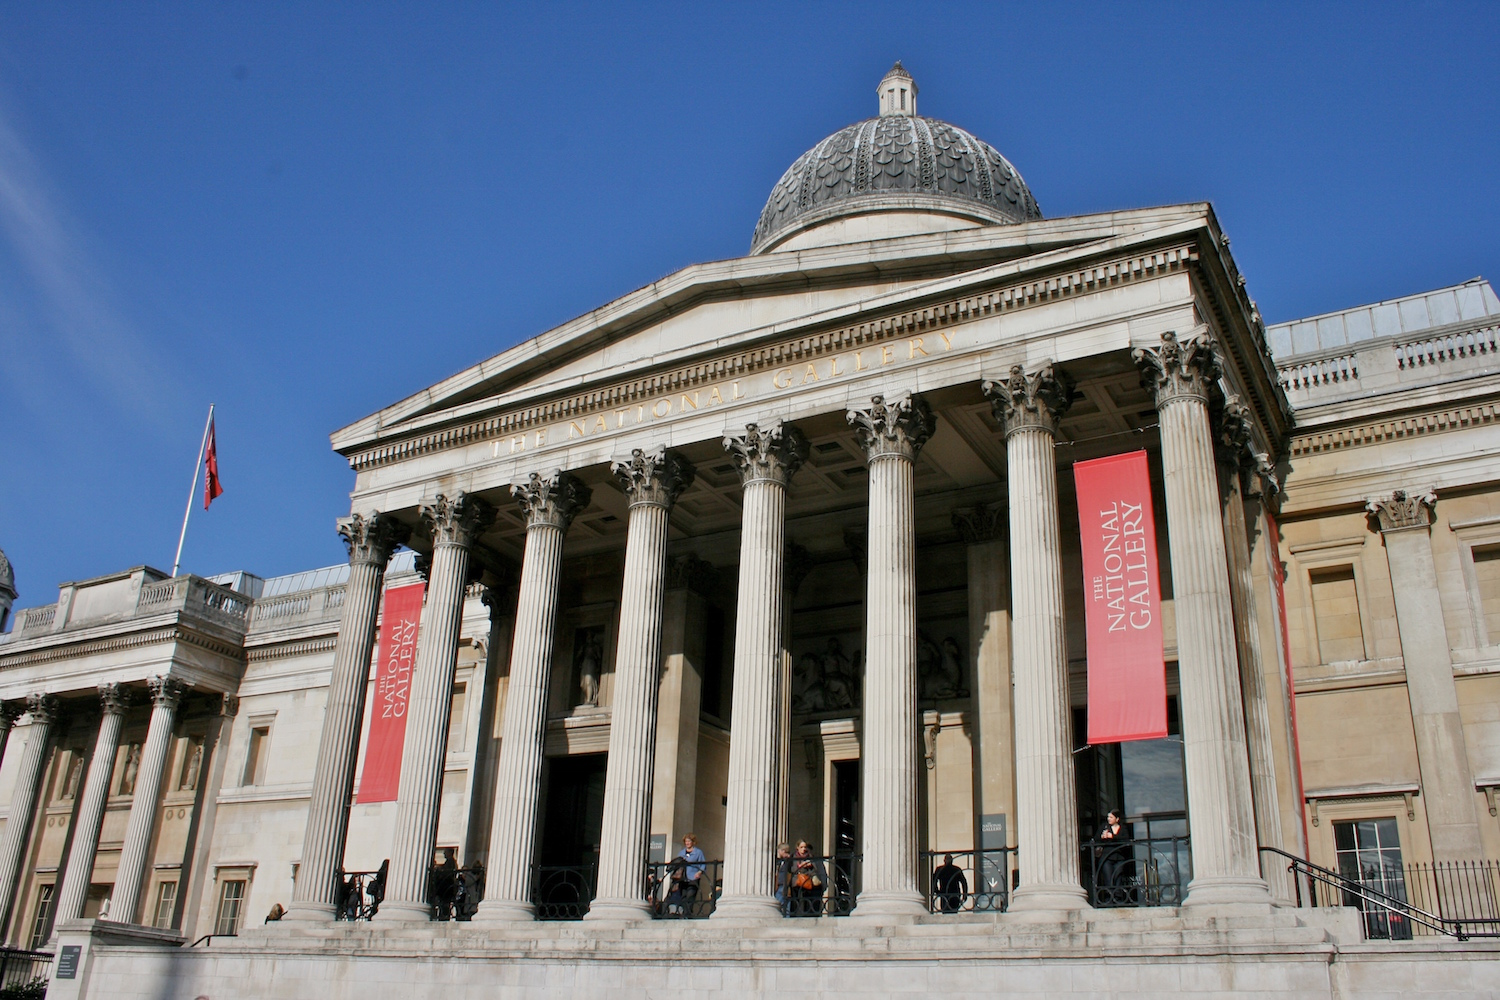 The National Gallery, London. Photo: Mike Peel